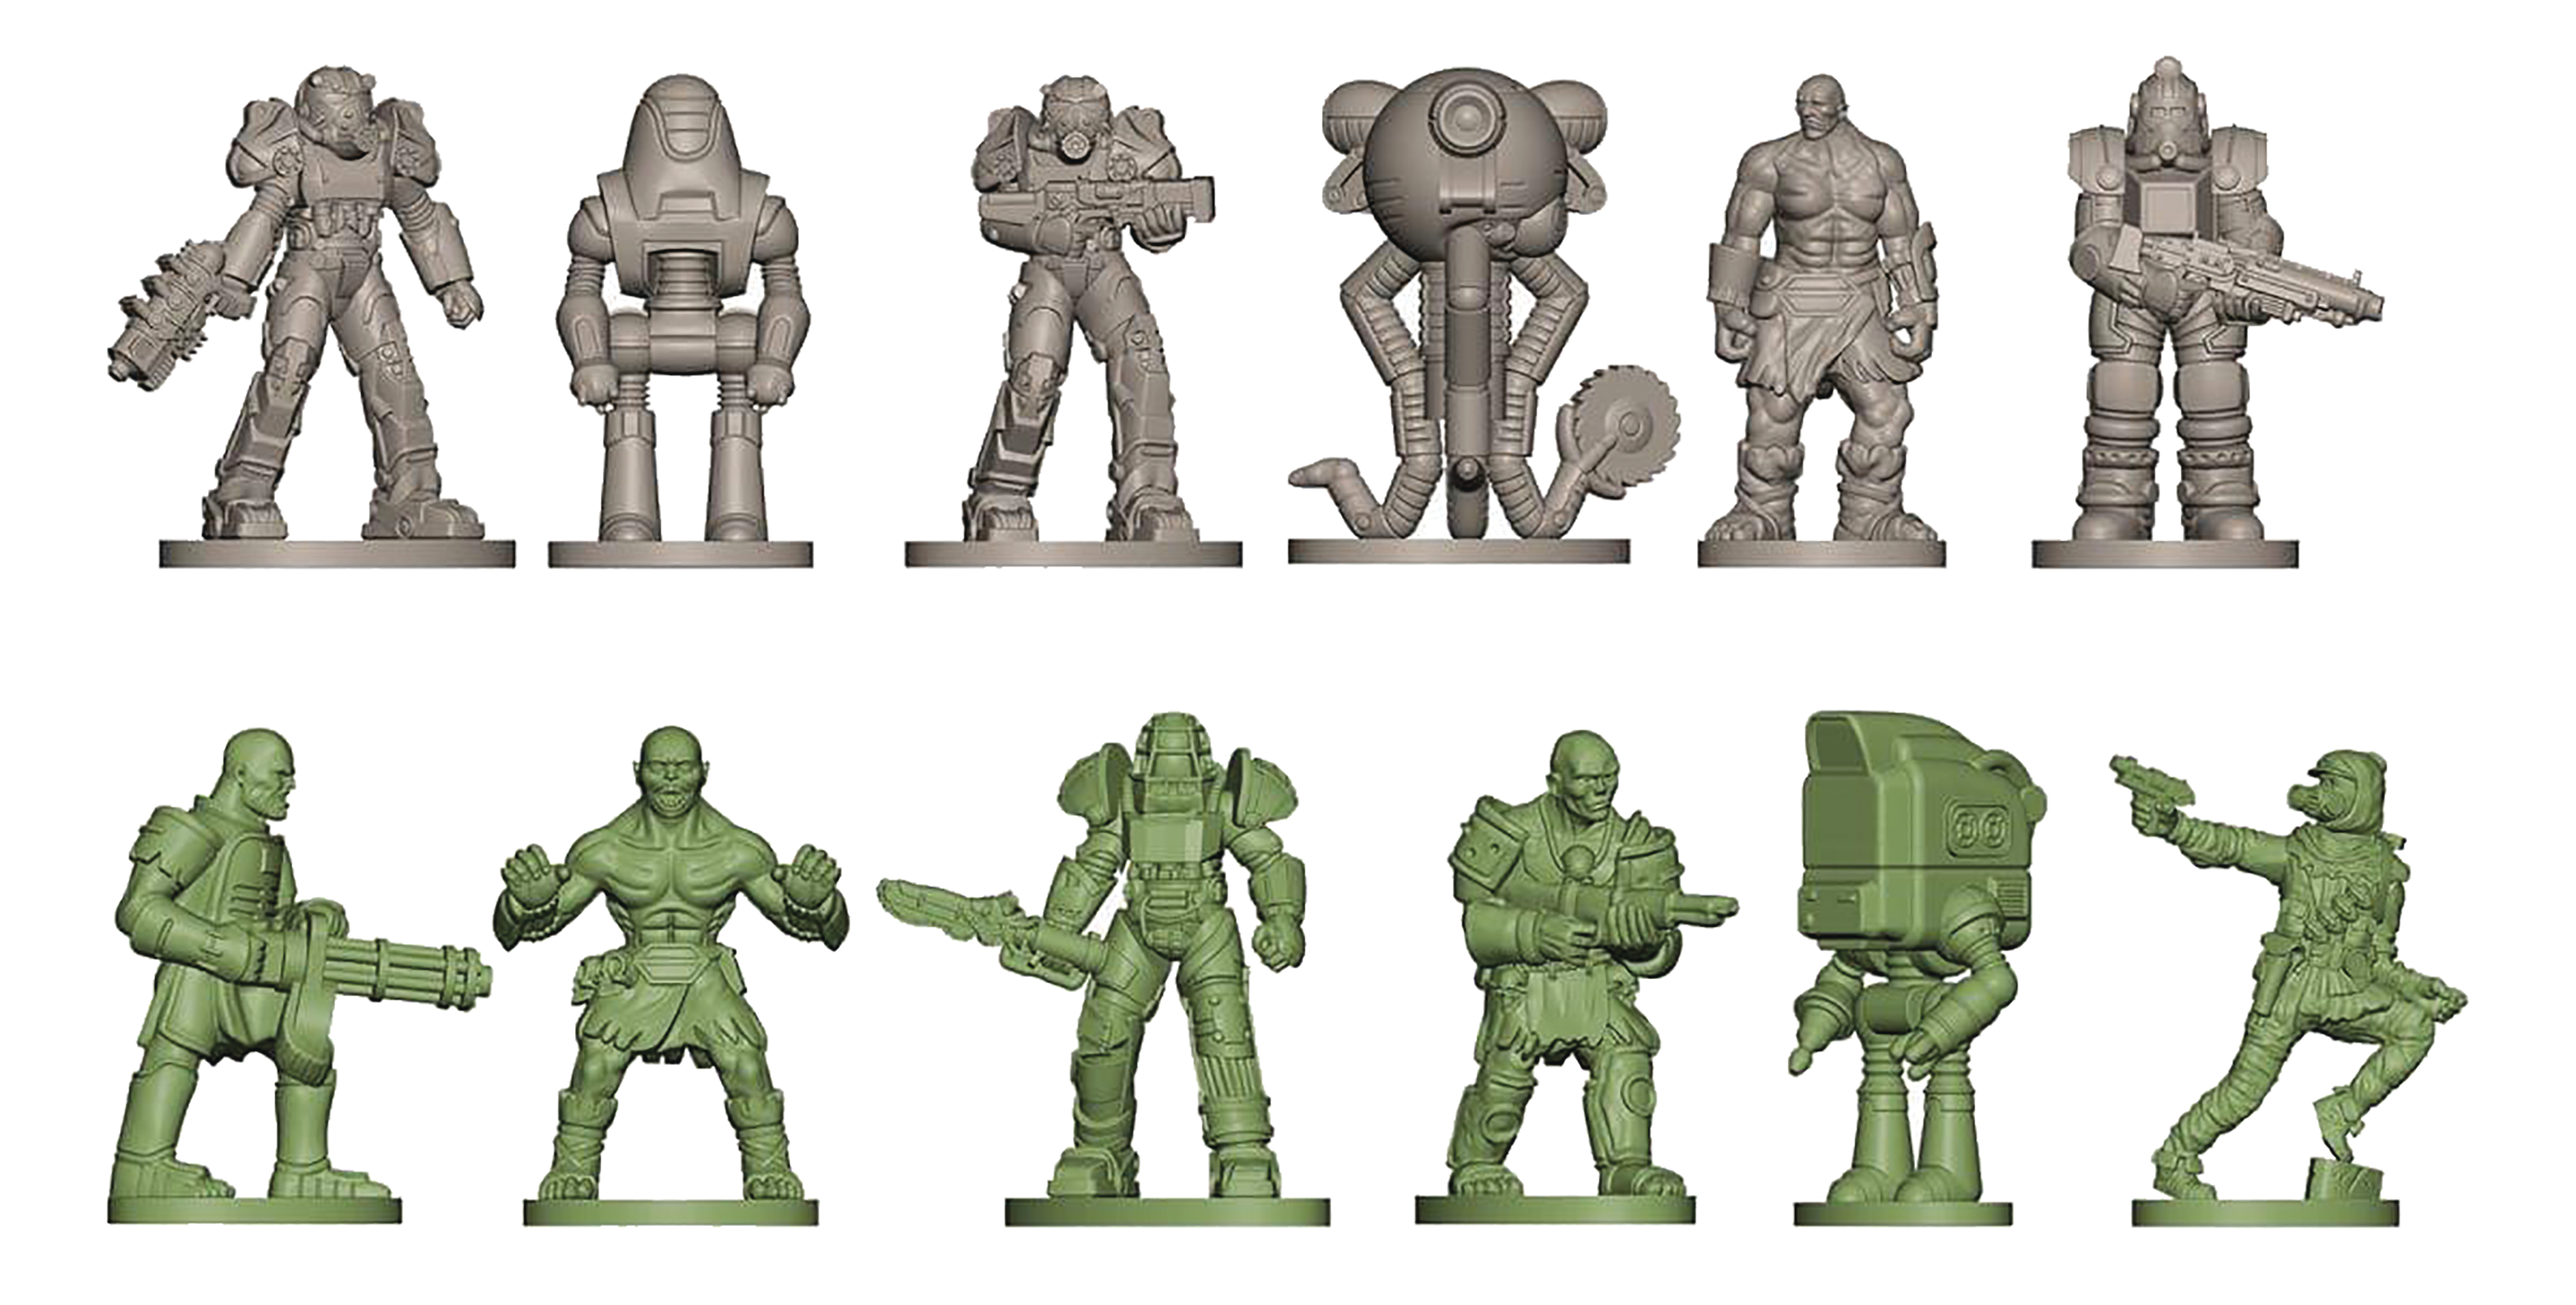 FALLOUT NANOFORCE ARMY BUILDER FIGURE BAGGED SET # 3